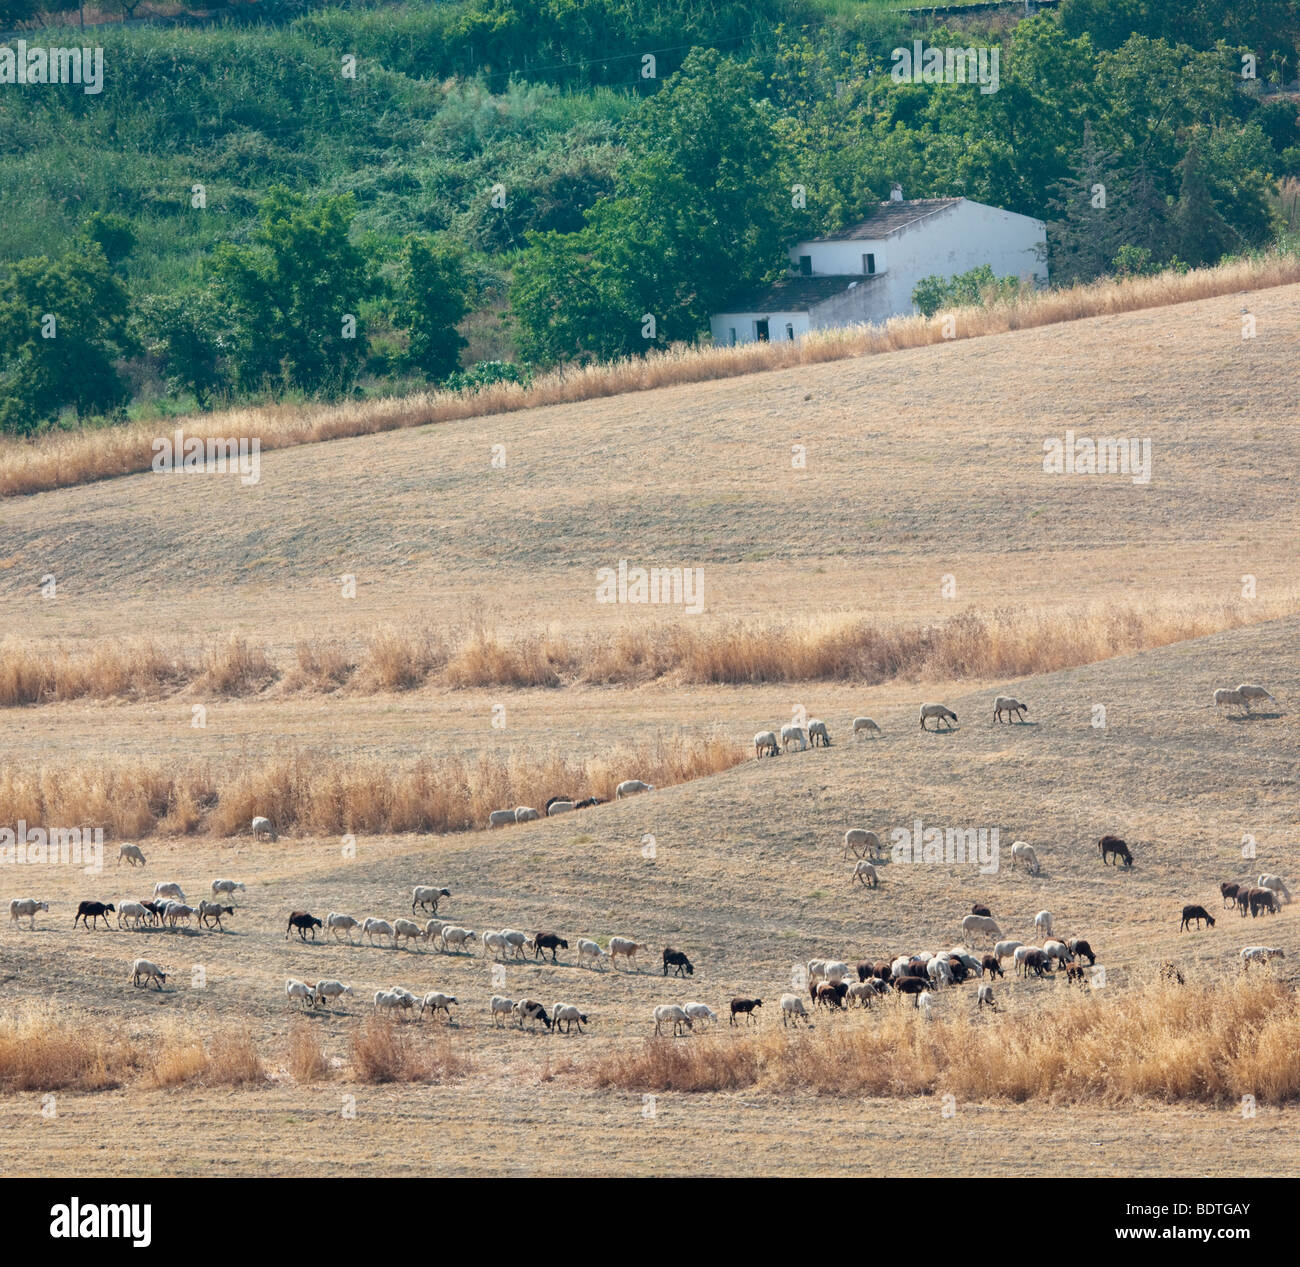 Herd of goats and sheep grazing dry pasture near Alhaurin de la Torre, Malaga Province, Spain - Stock Image